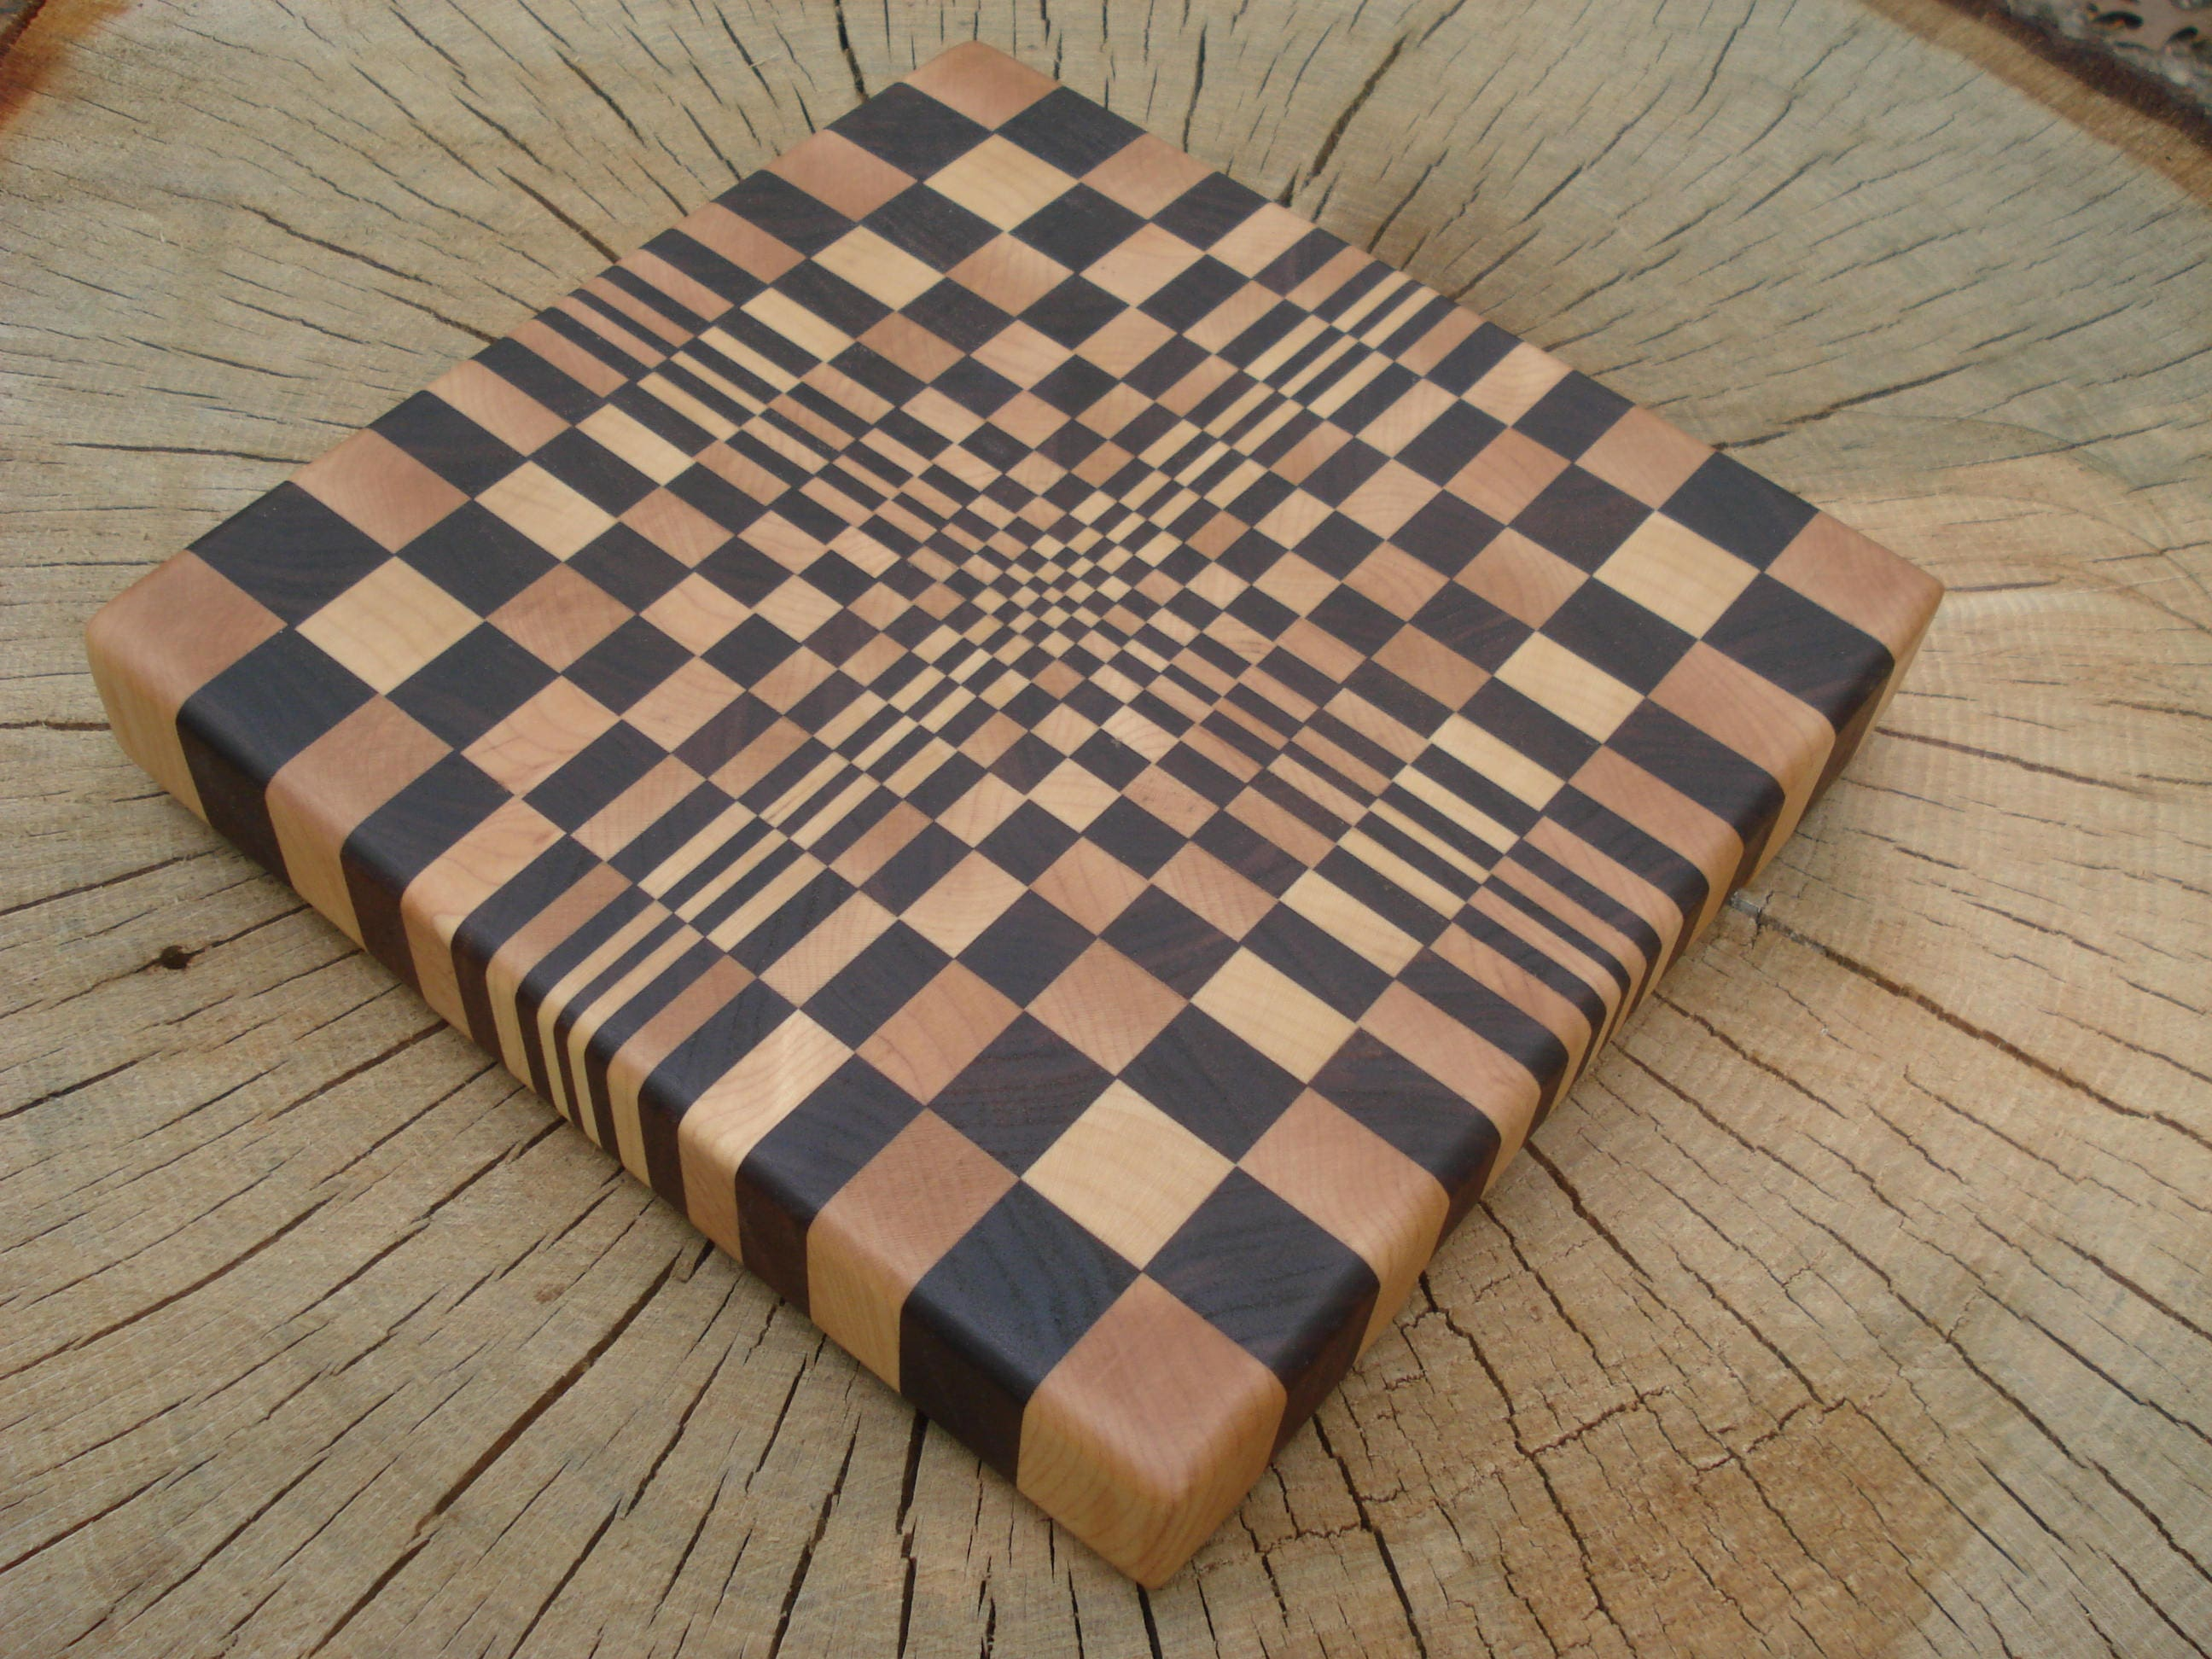 End Grain Cutting Board Maple Walnut W Optical Illusion